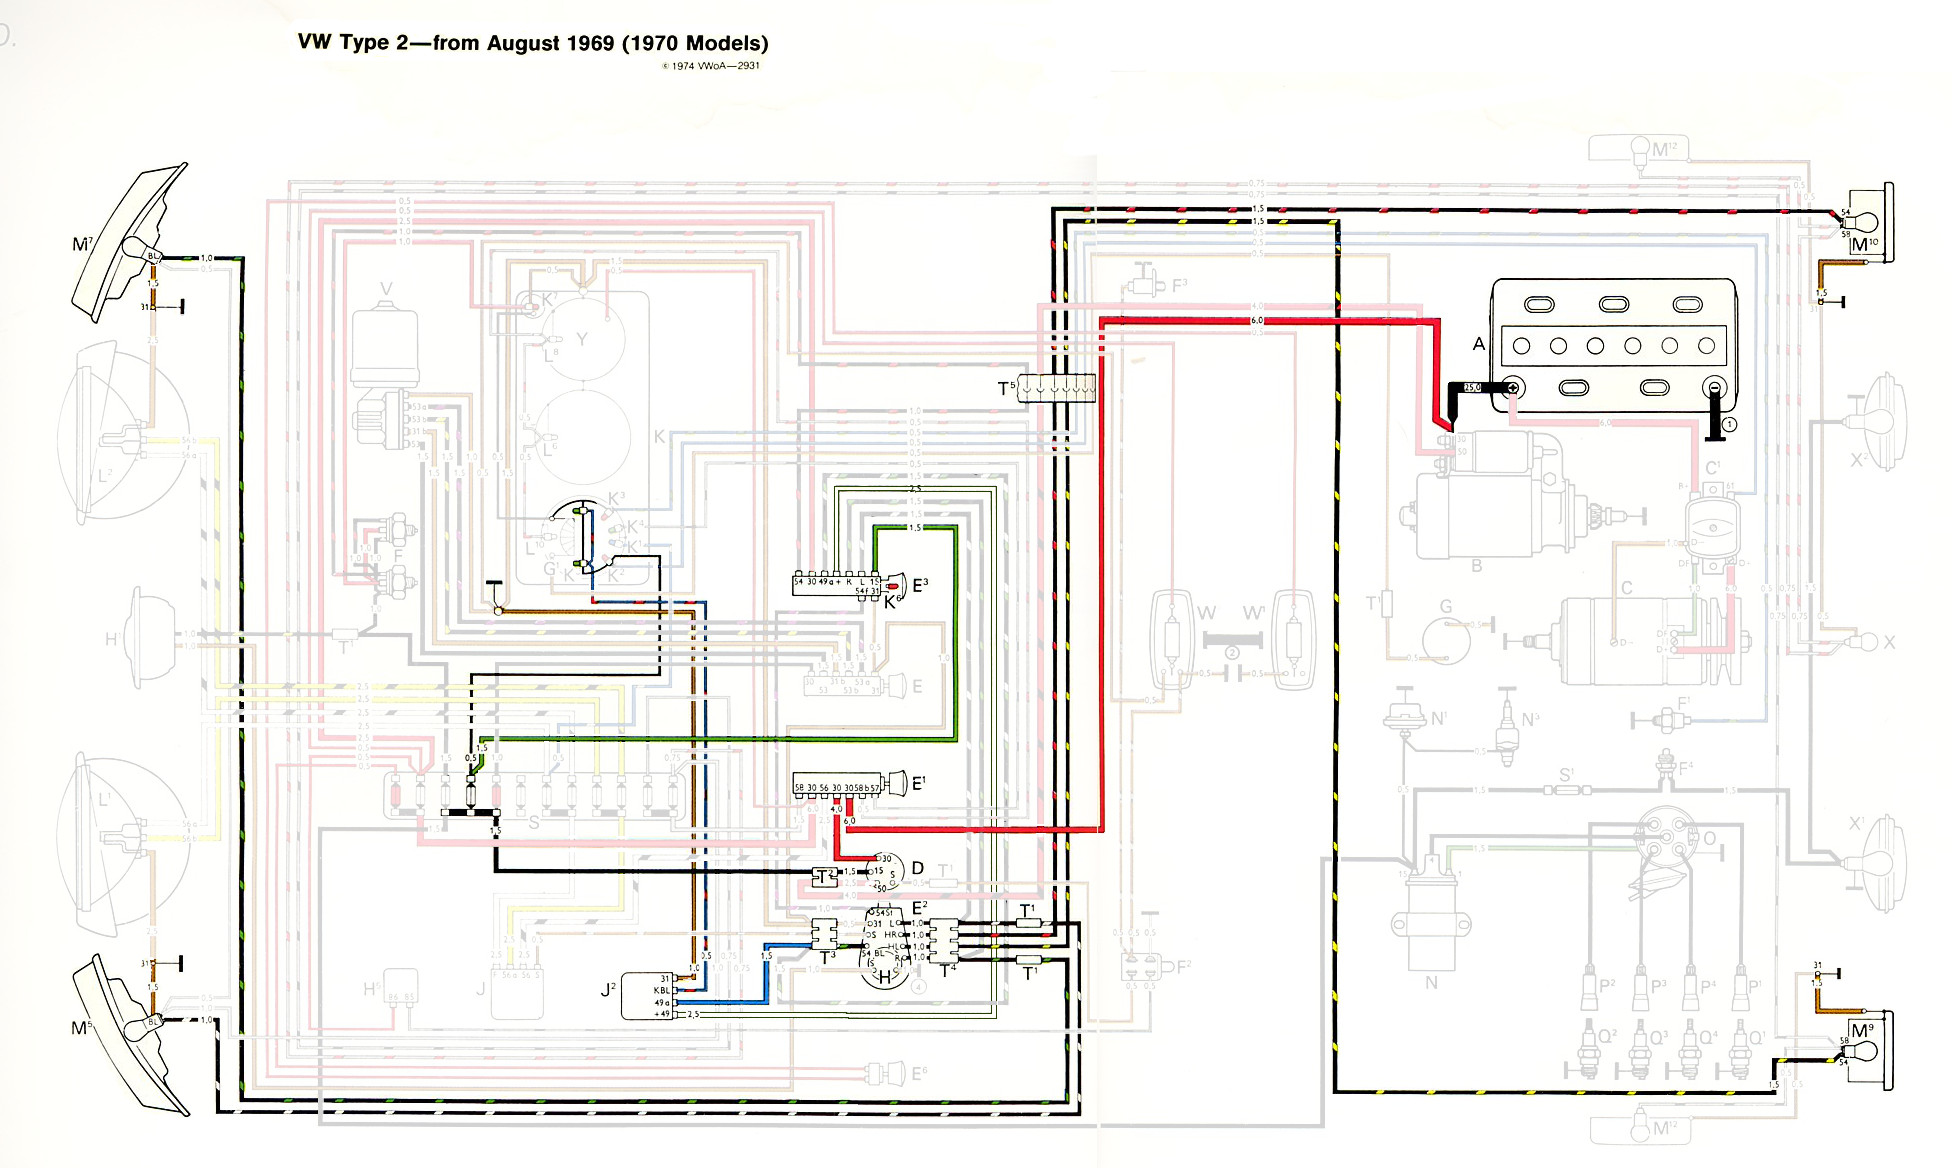 Type 2 Wiring Diagrams 1970 Datsun Alternator Diagram